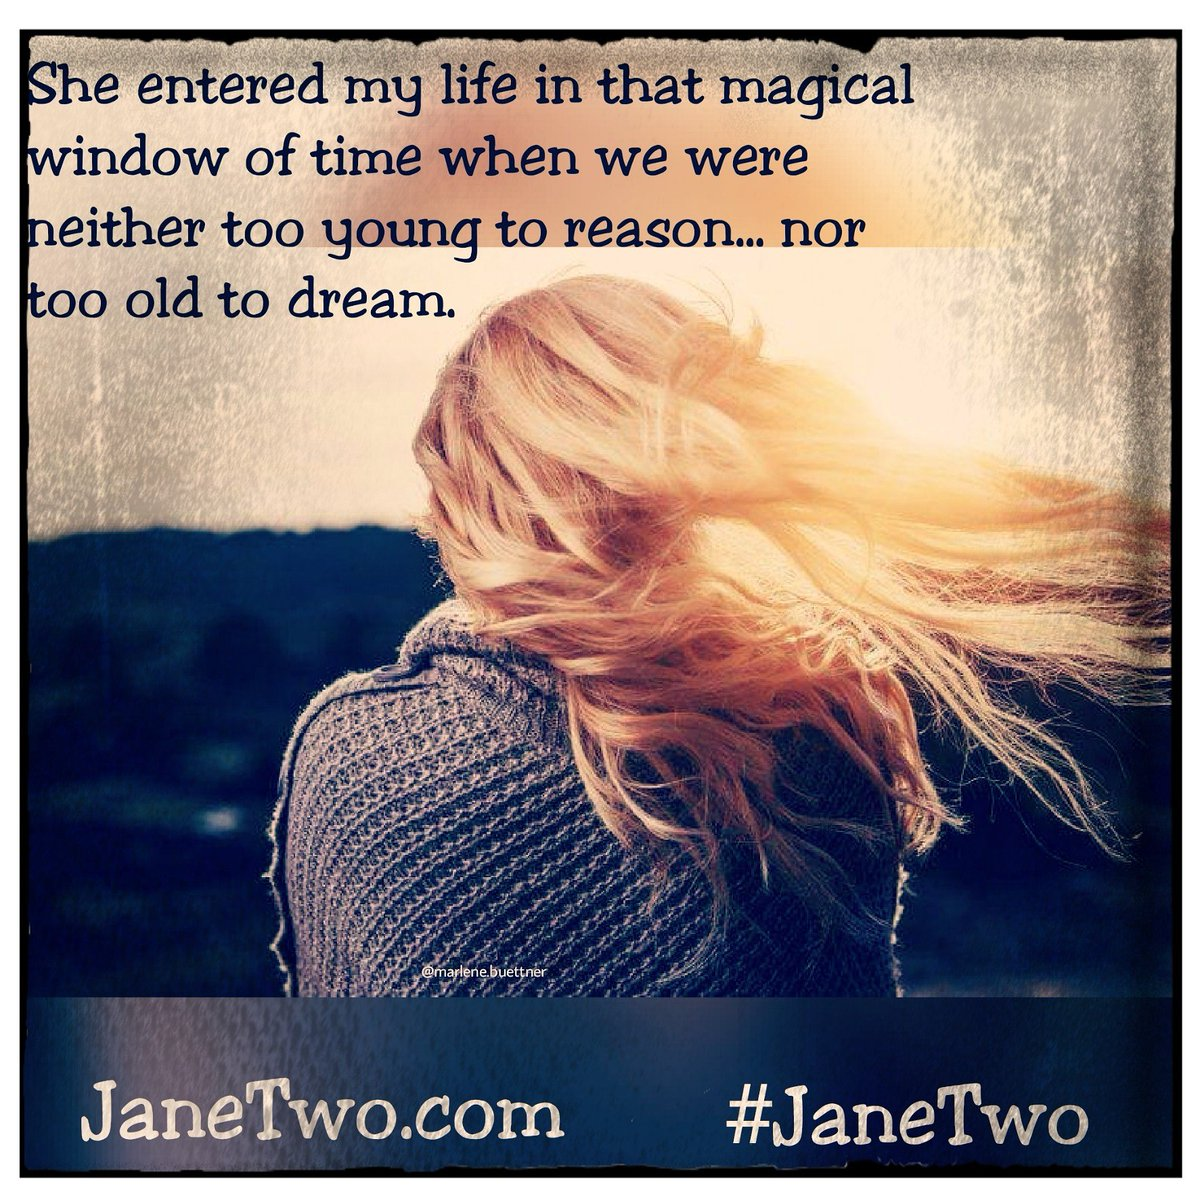 Wonderful book #JaneTwo  @seanflanery  #support #quotes #mustread  #mondaymotivation  She entered my life in...  https://www. instagram.com/p/BZddXlcHYEp/  &nbsp;  <br>http://pic.twitter.com/jdOY9xEKOL